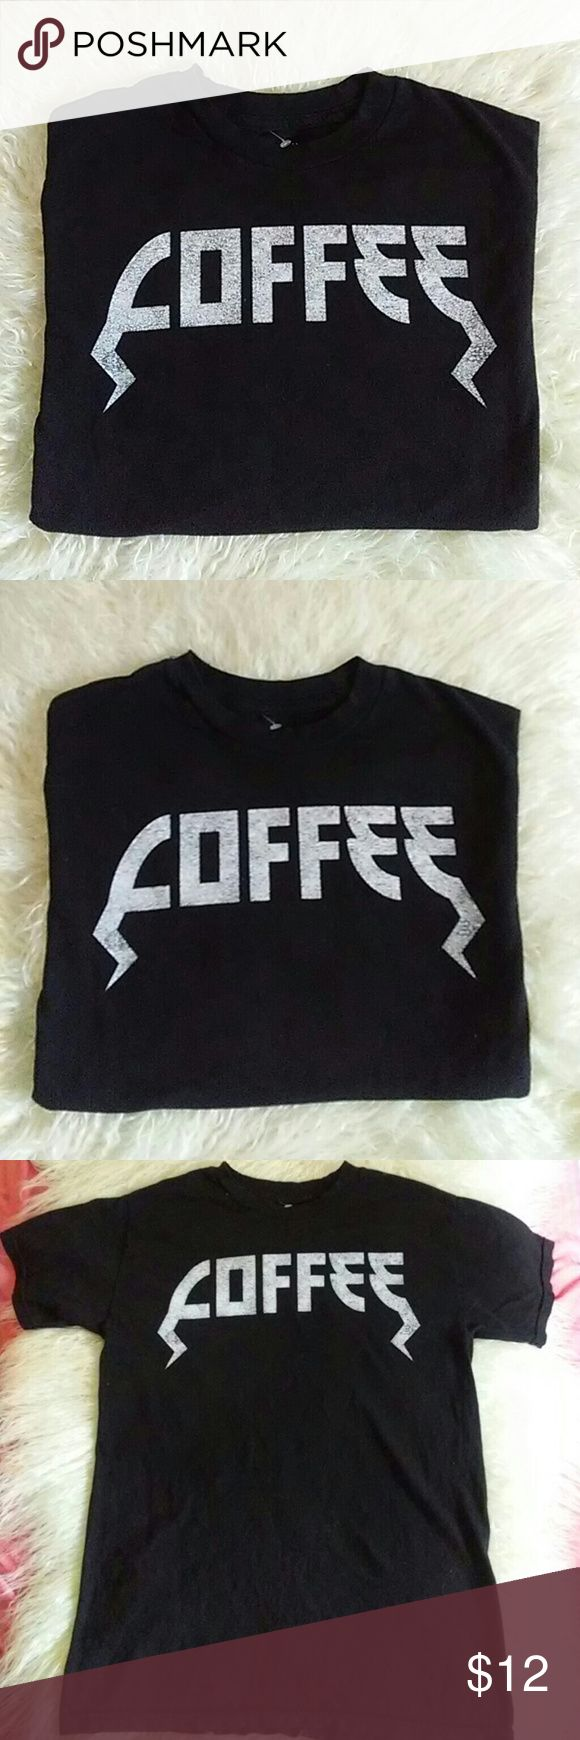 """COFFEE T-Shirt 100% Cotton Size S Black short """"COFFEE"""" short sleeve shirt Old German Font. 100% cotton Made in Mexico Brand new.  Smoke free home Fifth Sun Tops Tees - Short Sleeve"""